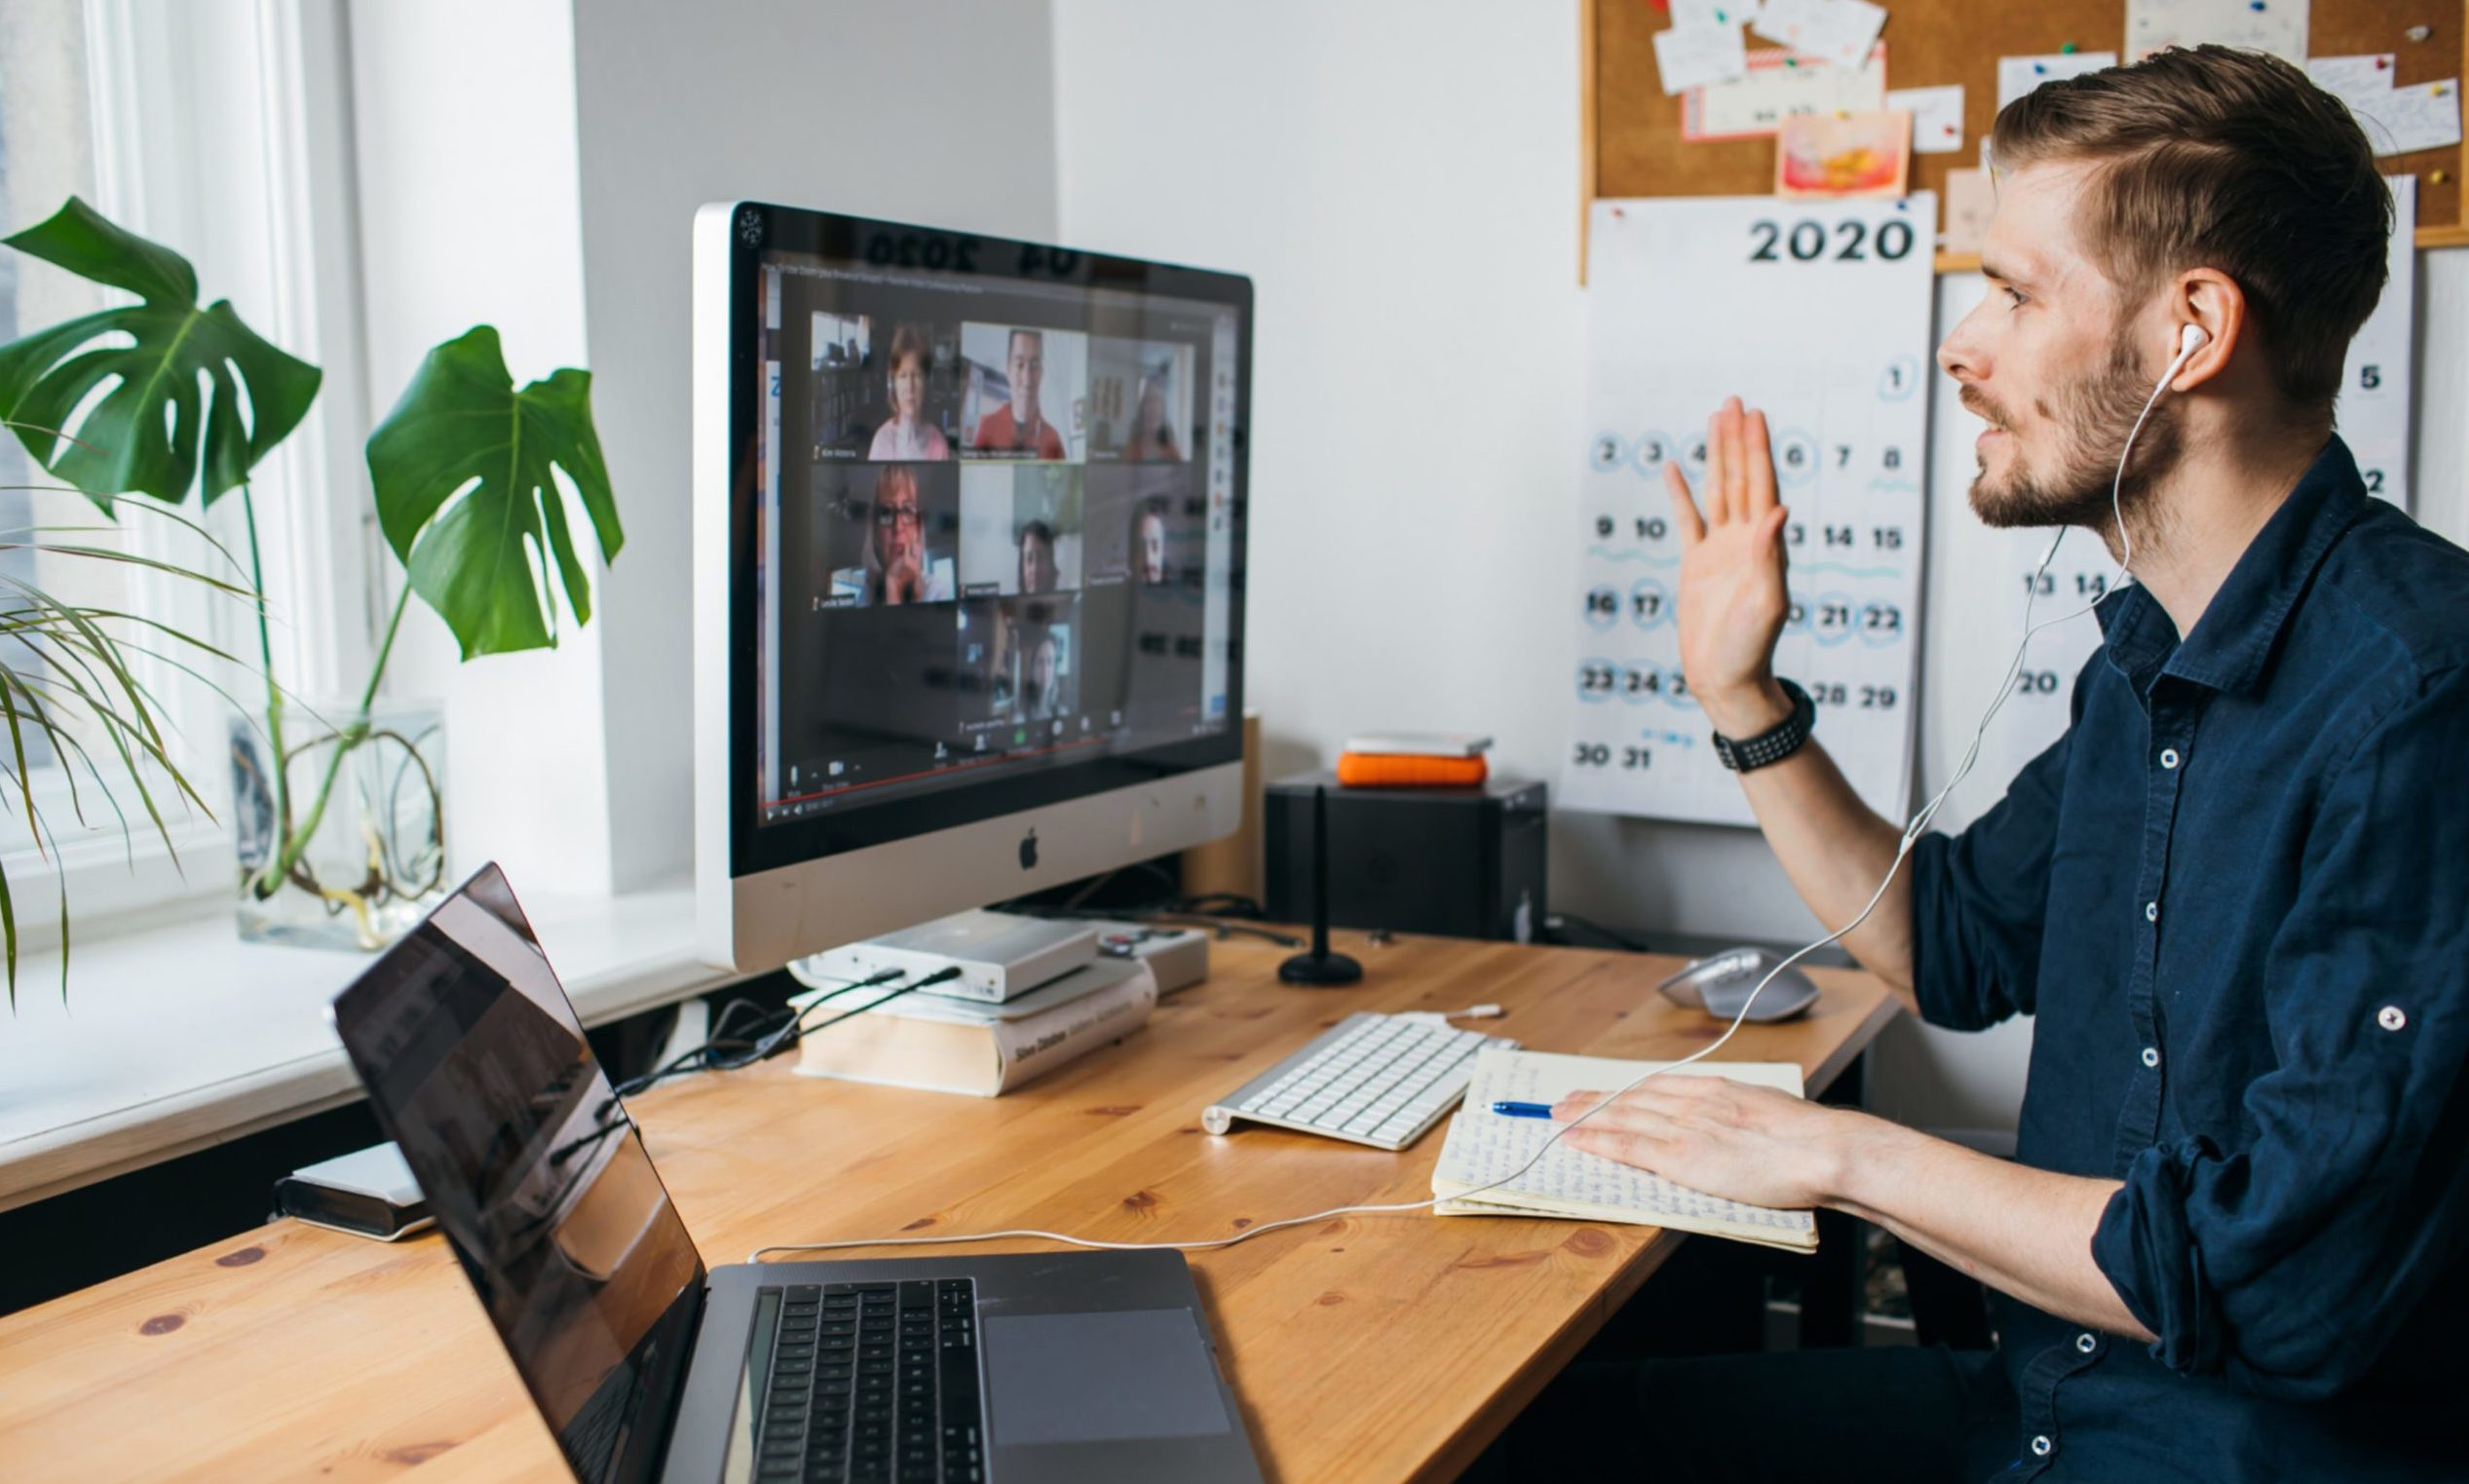 A man takes part in a Zoom video conference.